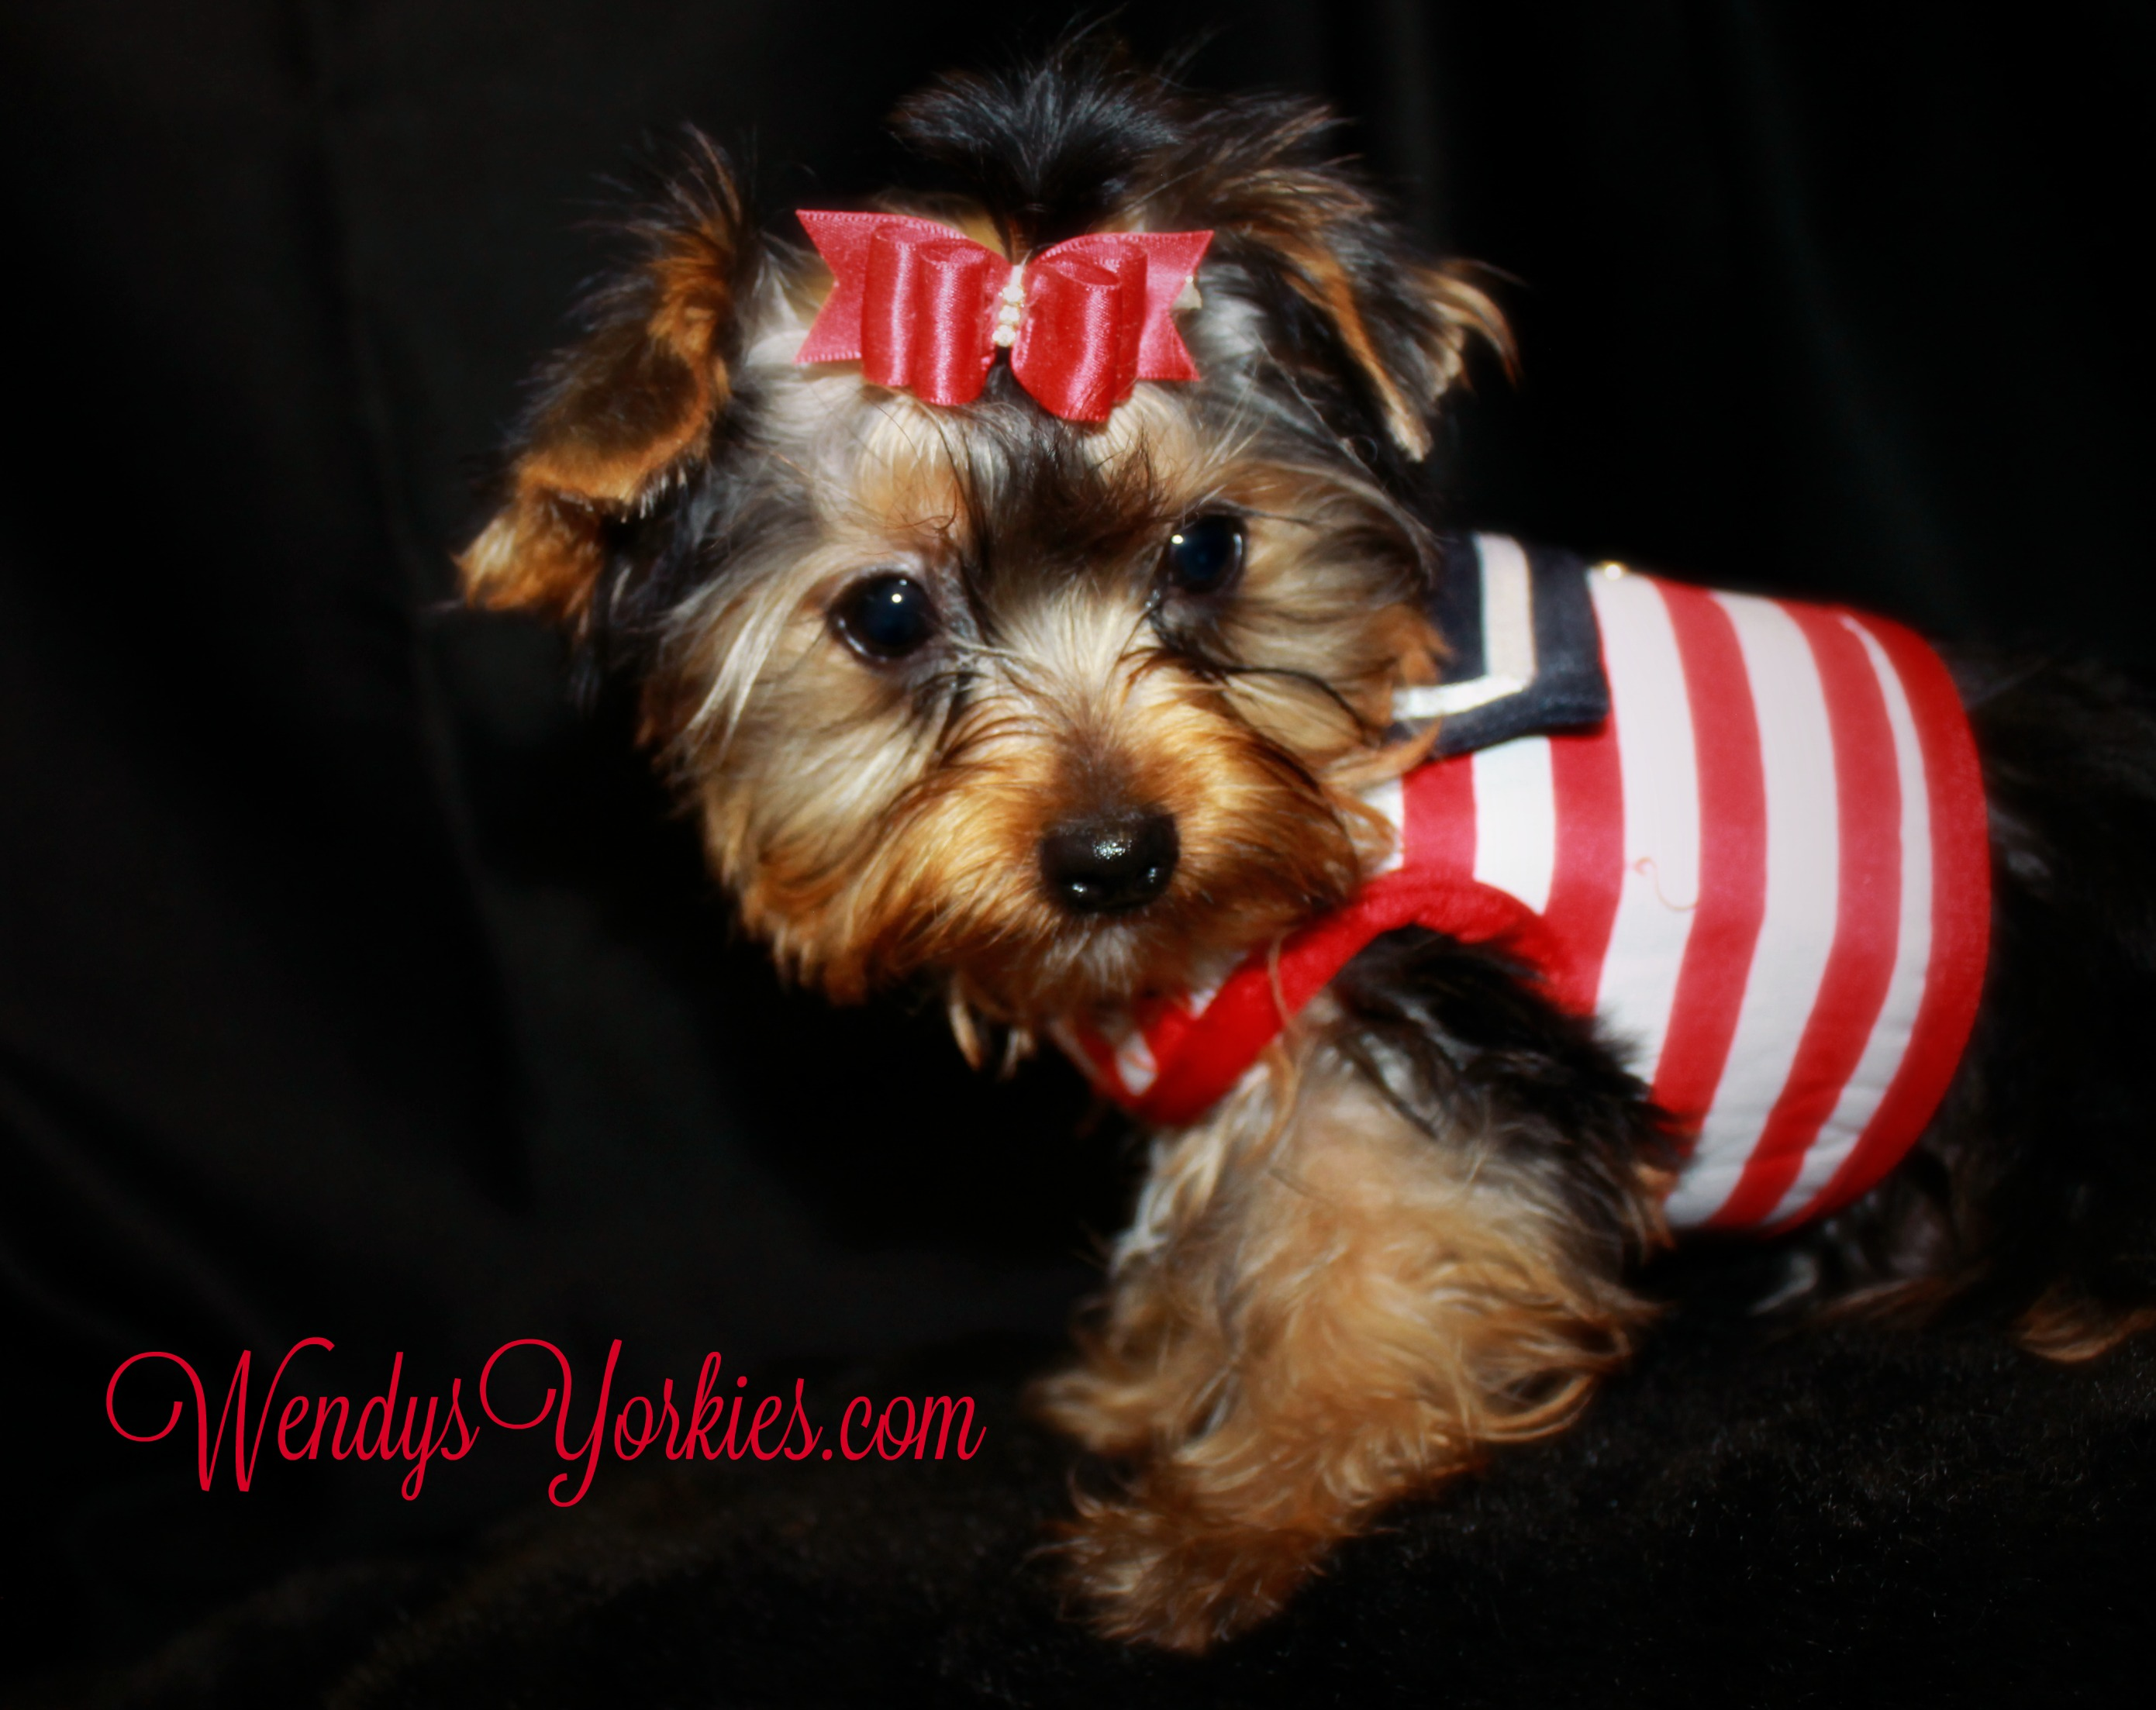 Male Yorkie puppy for sale, WendysYorkies.com, StarAce